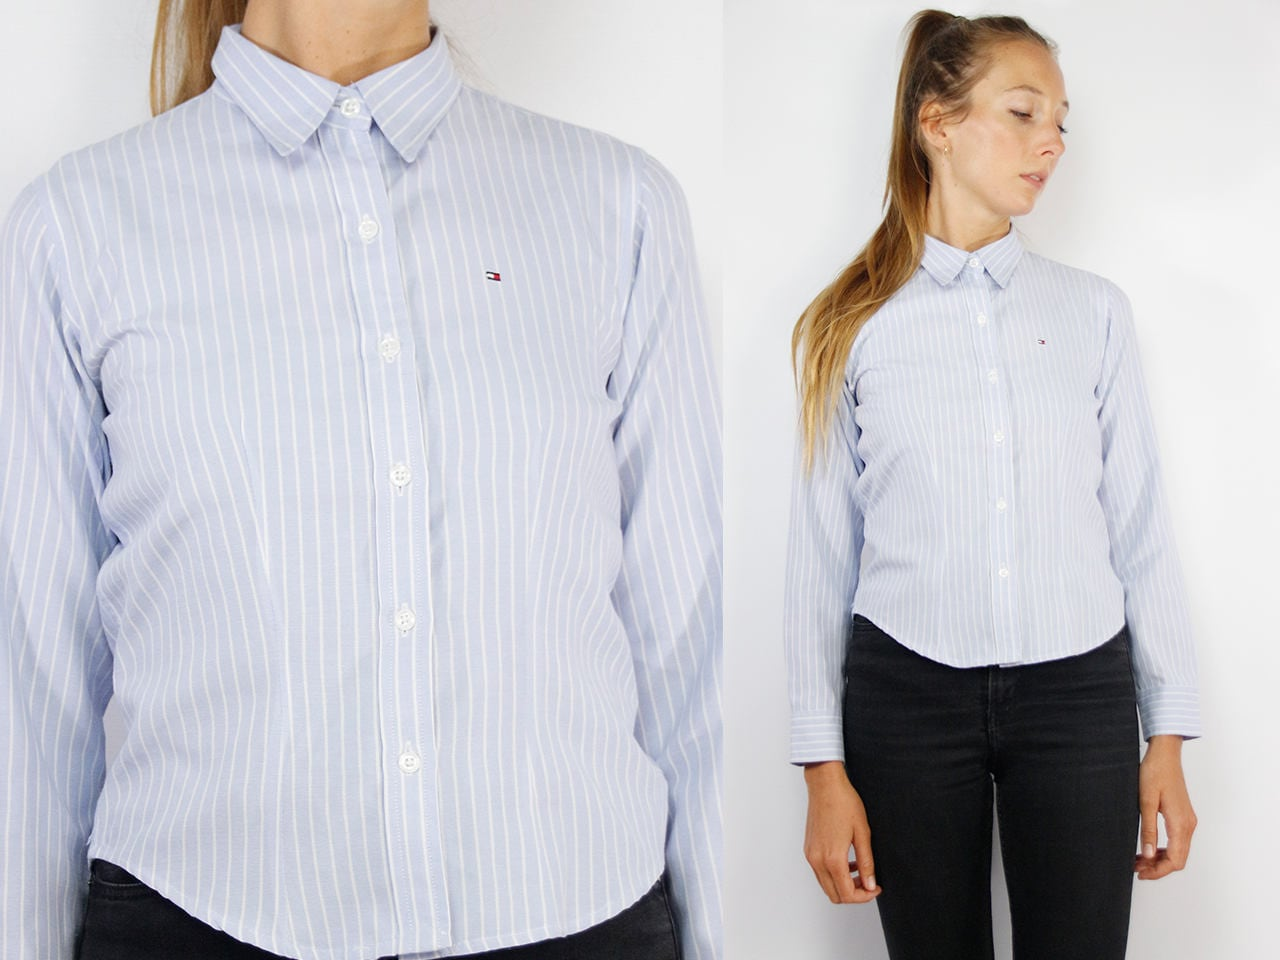 e3ac82ef8 TOMMY HILFIGER Shirt / Tommy Hilfiger / Button Up Shirt / Striped ...